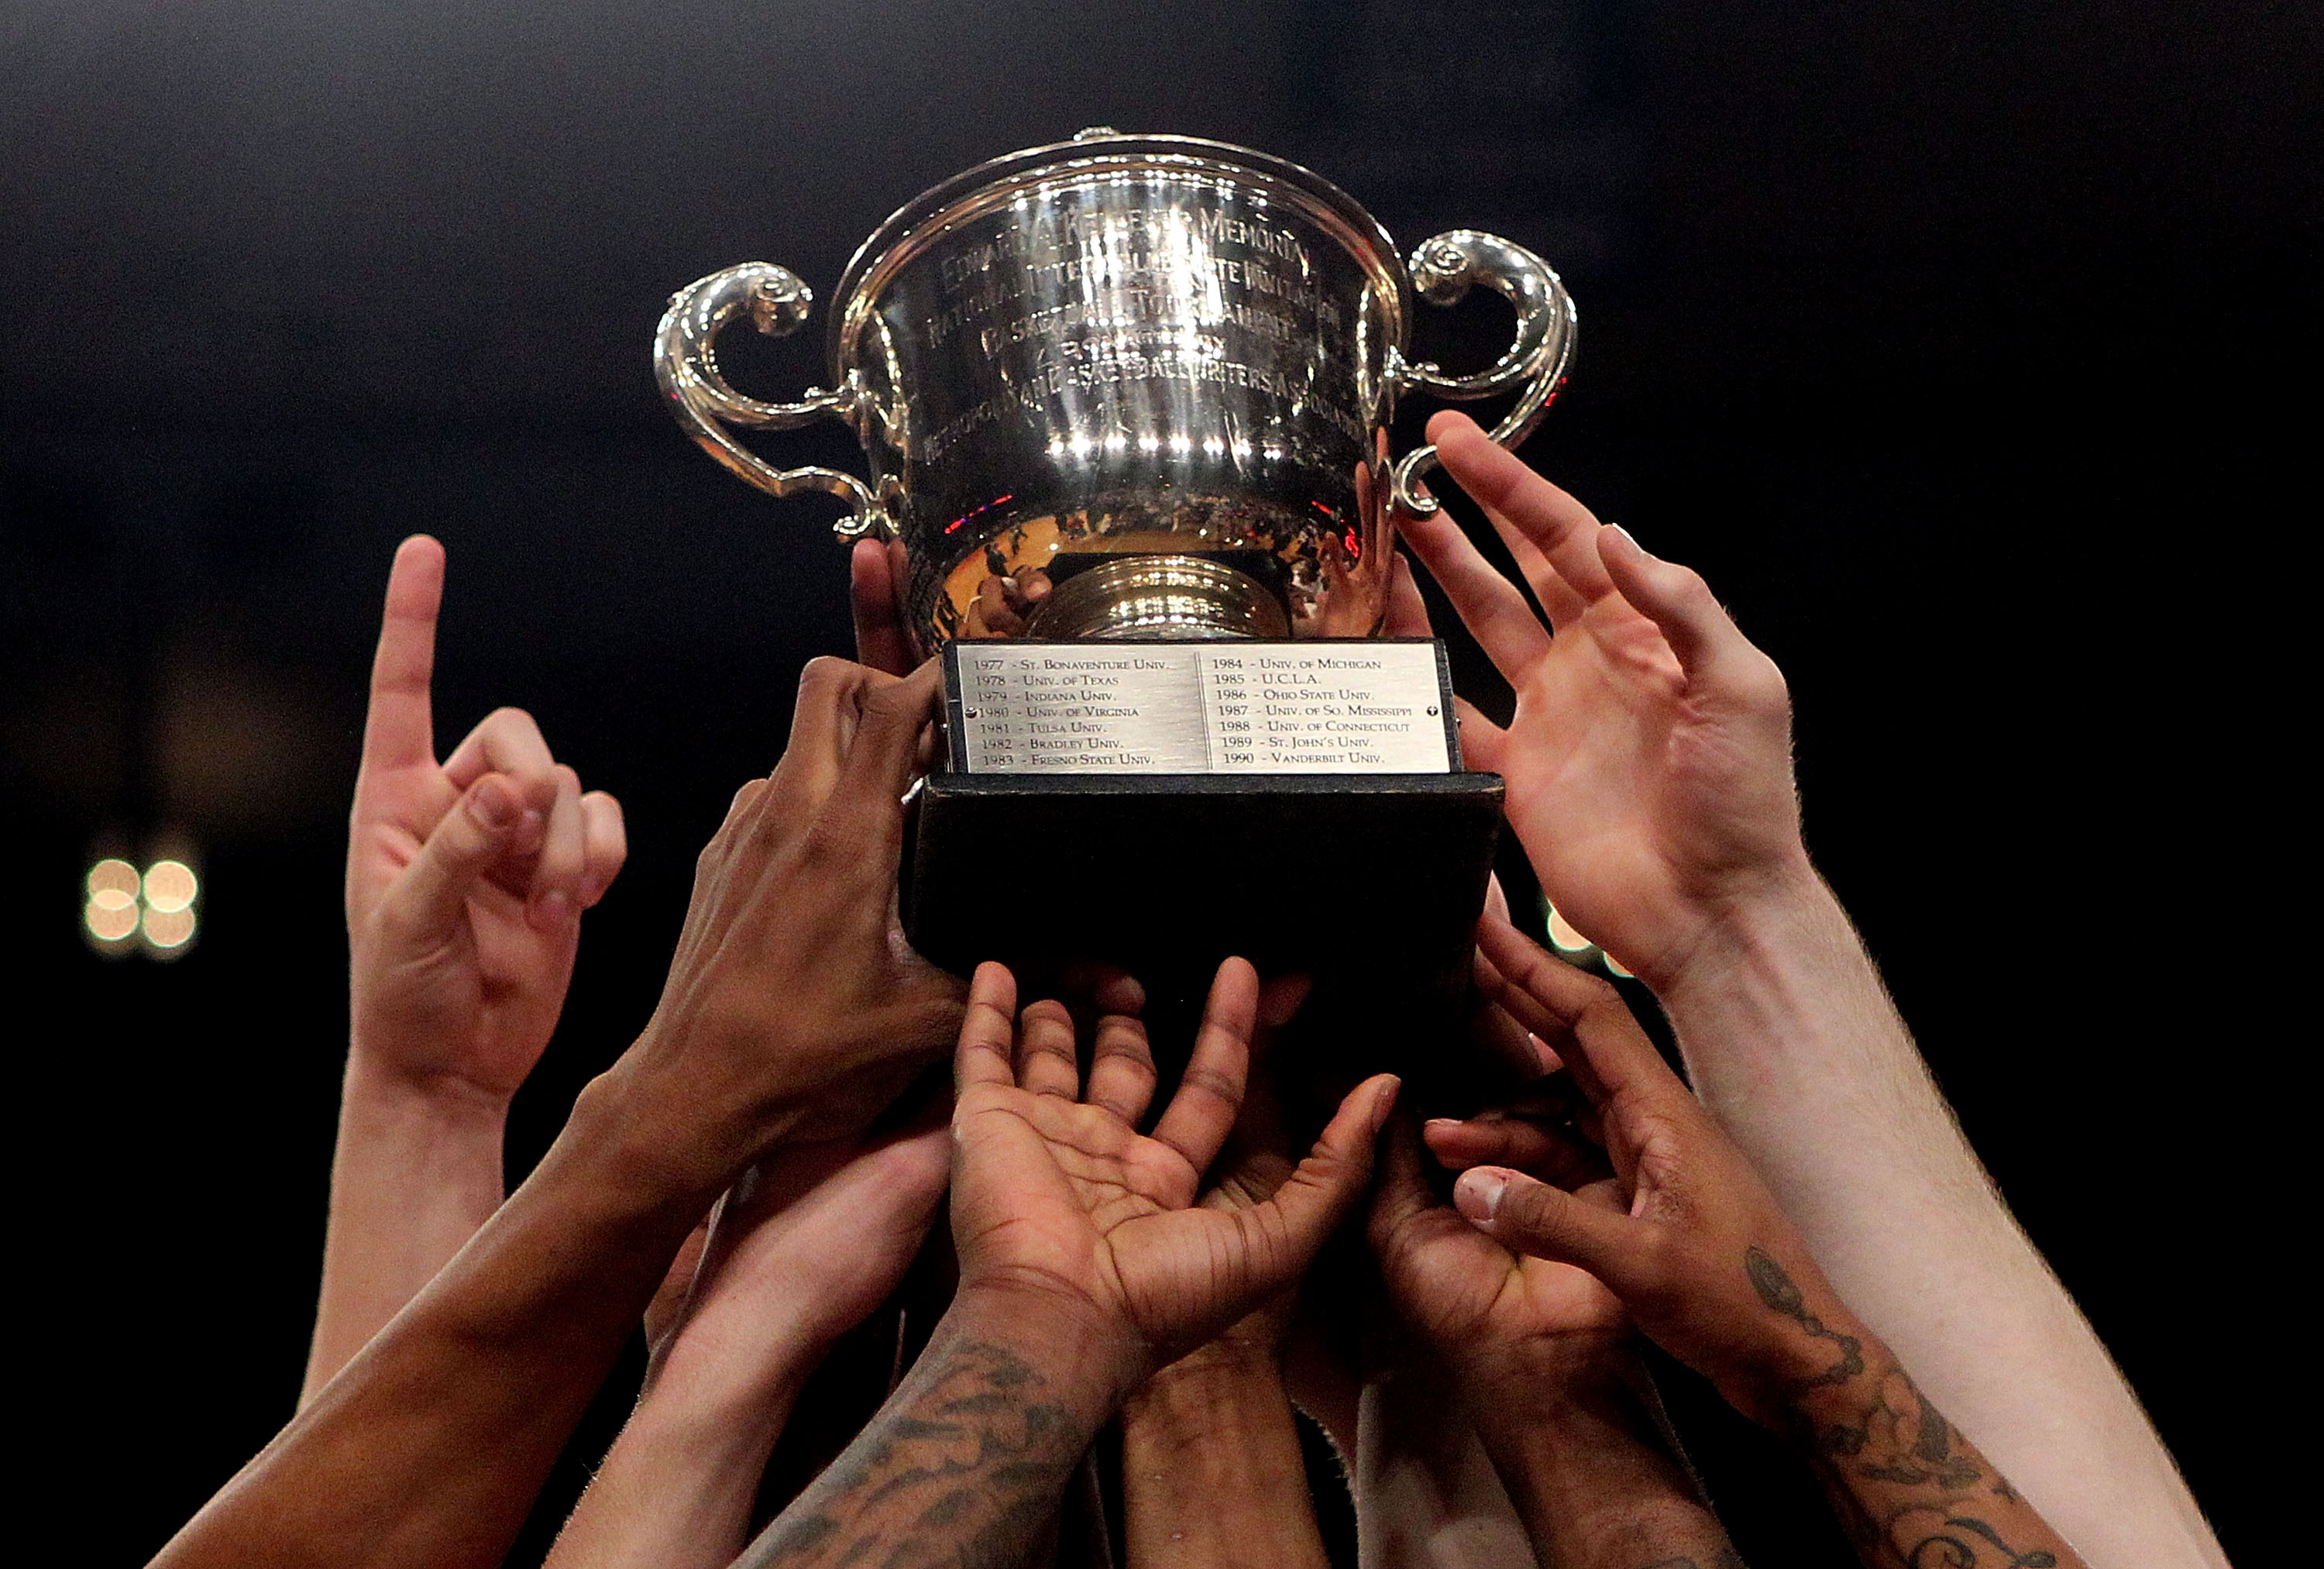 NEW YORK - APRIL 01:  The Dayton Flyers hold aloft the trophy to celebrate defeating the North Carolina Tar Heels during the 2010 NIT Championship Game at Madison Square Garden on April 1, 2010 in New York, New York.  (Photo by Nick Laham/Getty Images)